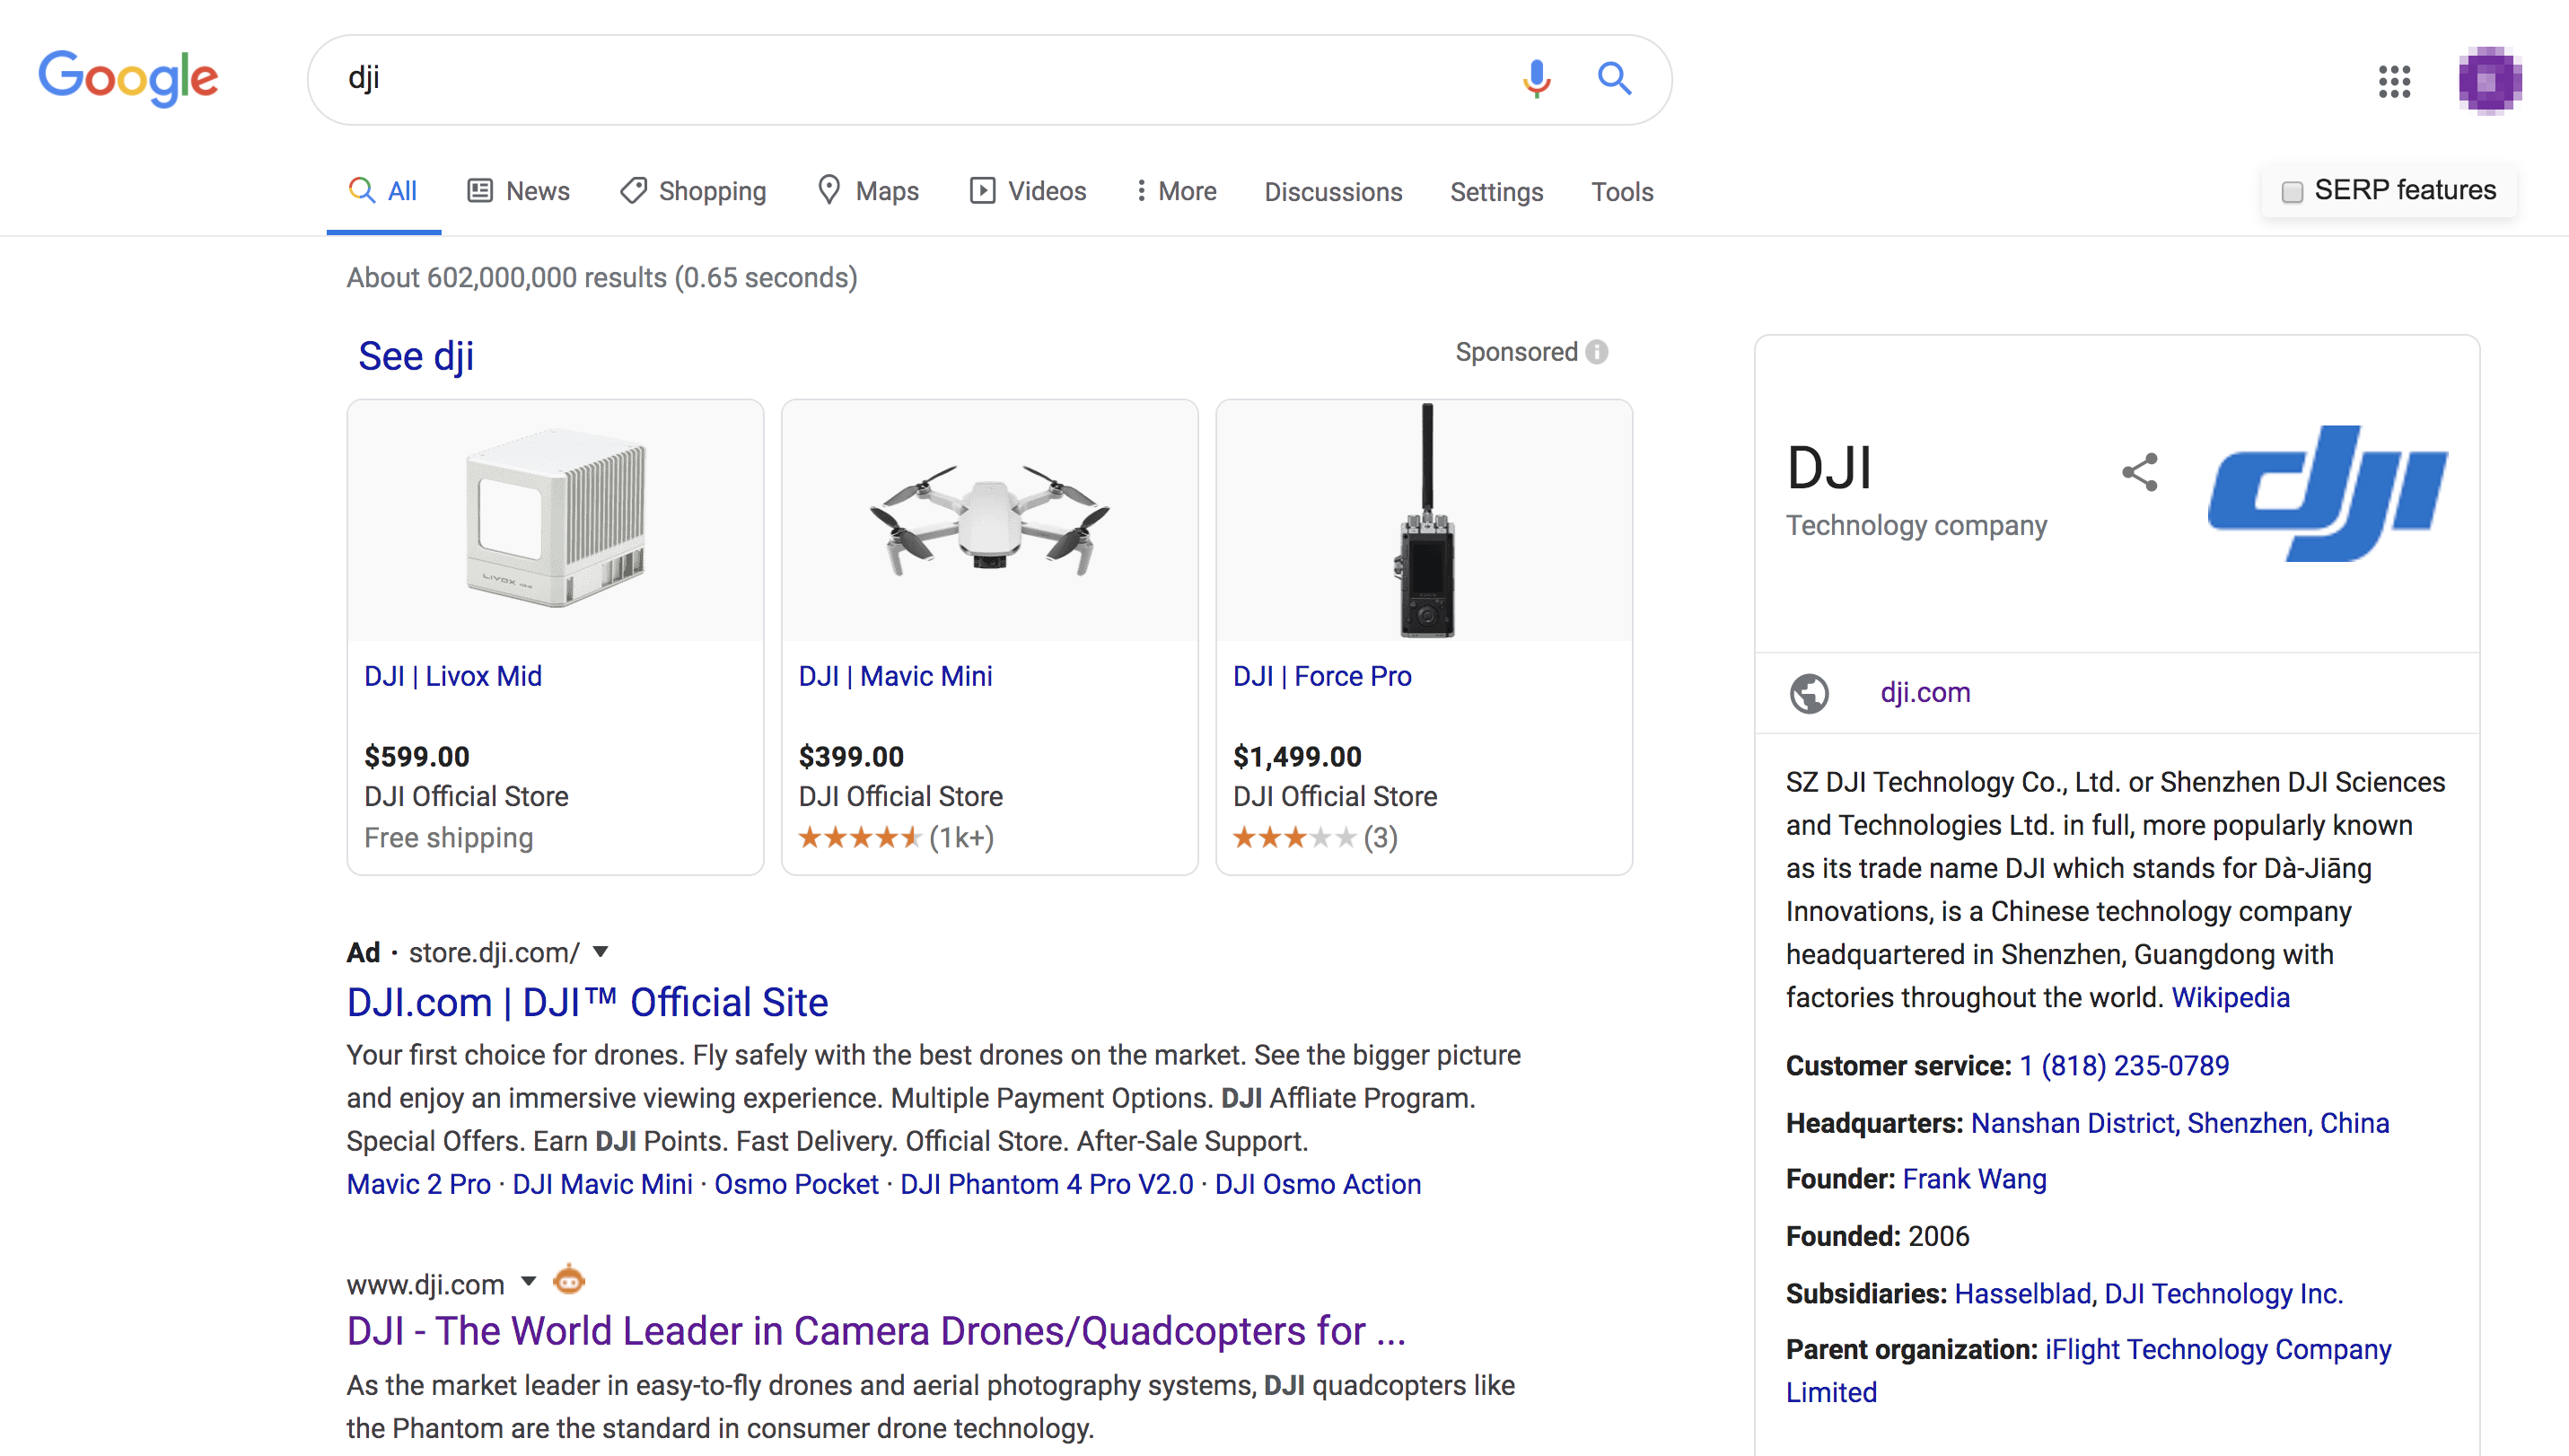 DJI Branded Keywords